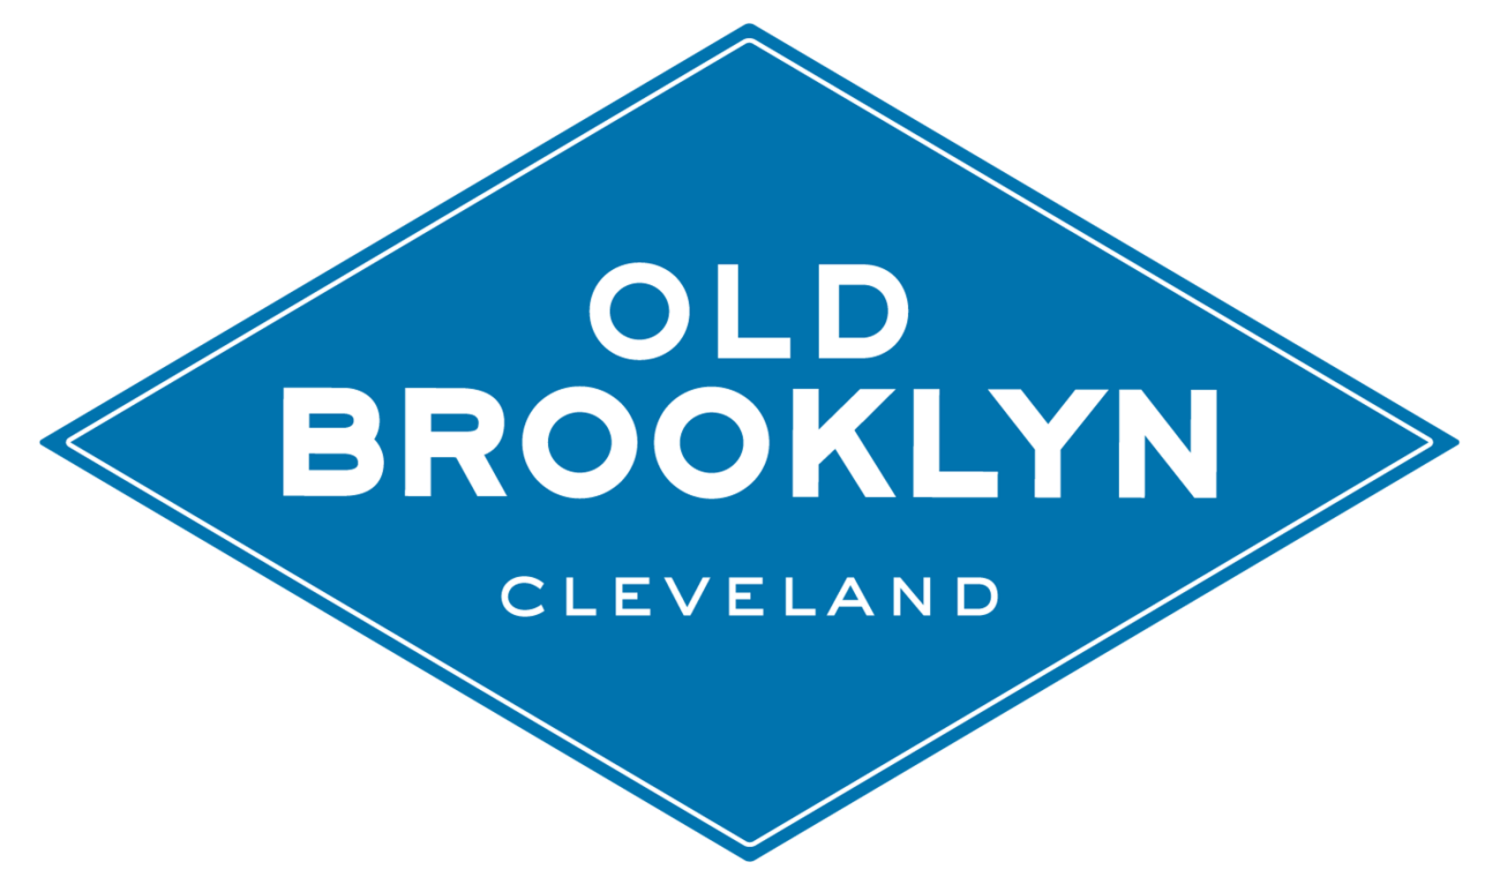 Old Brooklyn